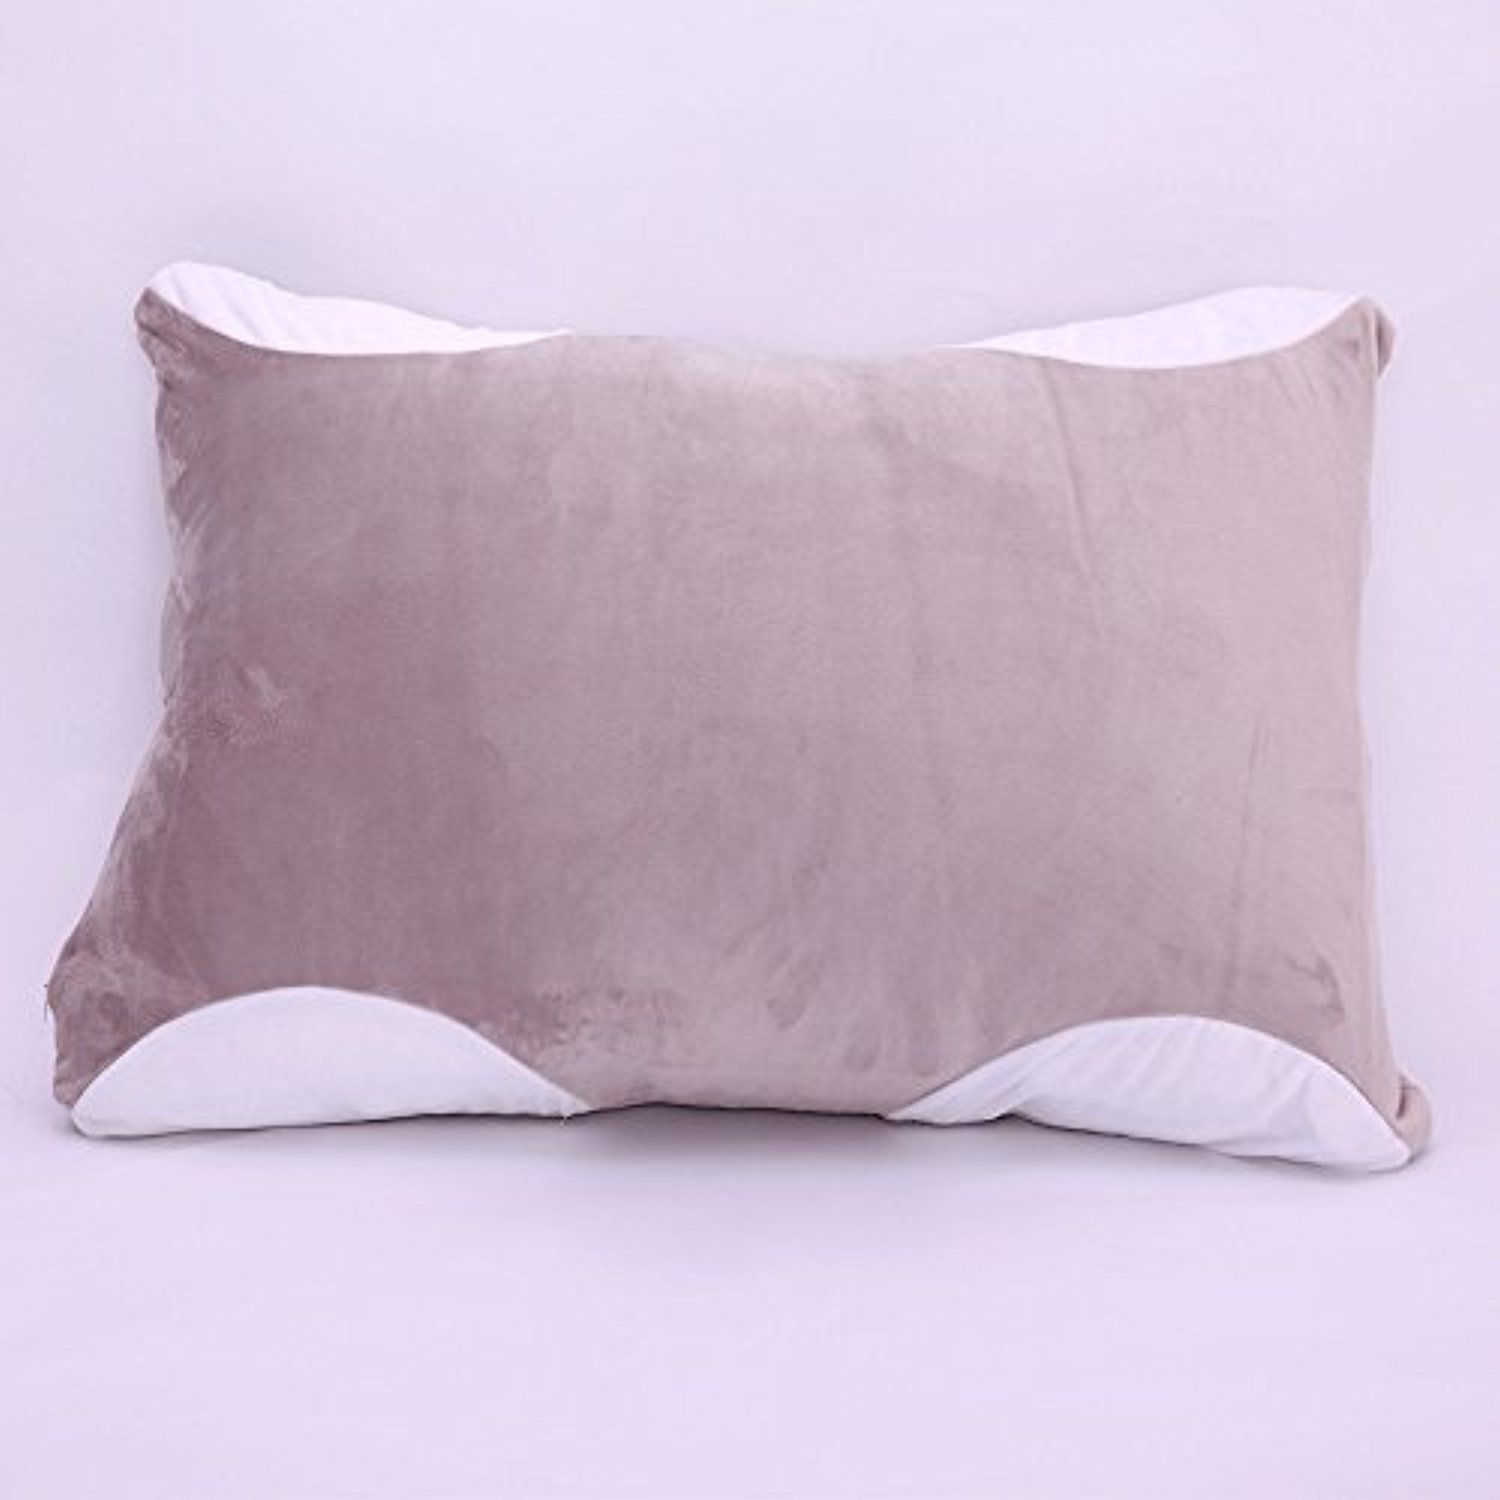 Dust Mite Pillow Covers Entrancing Btwzm 2 Pack Luxury Zippered Queen Pillow Protector Covers  Unique Design Ideas